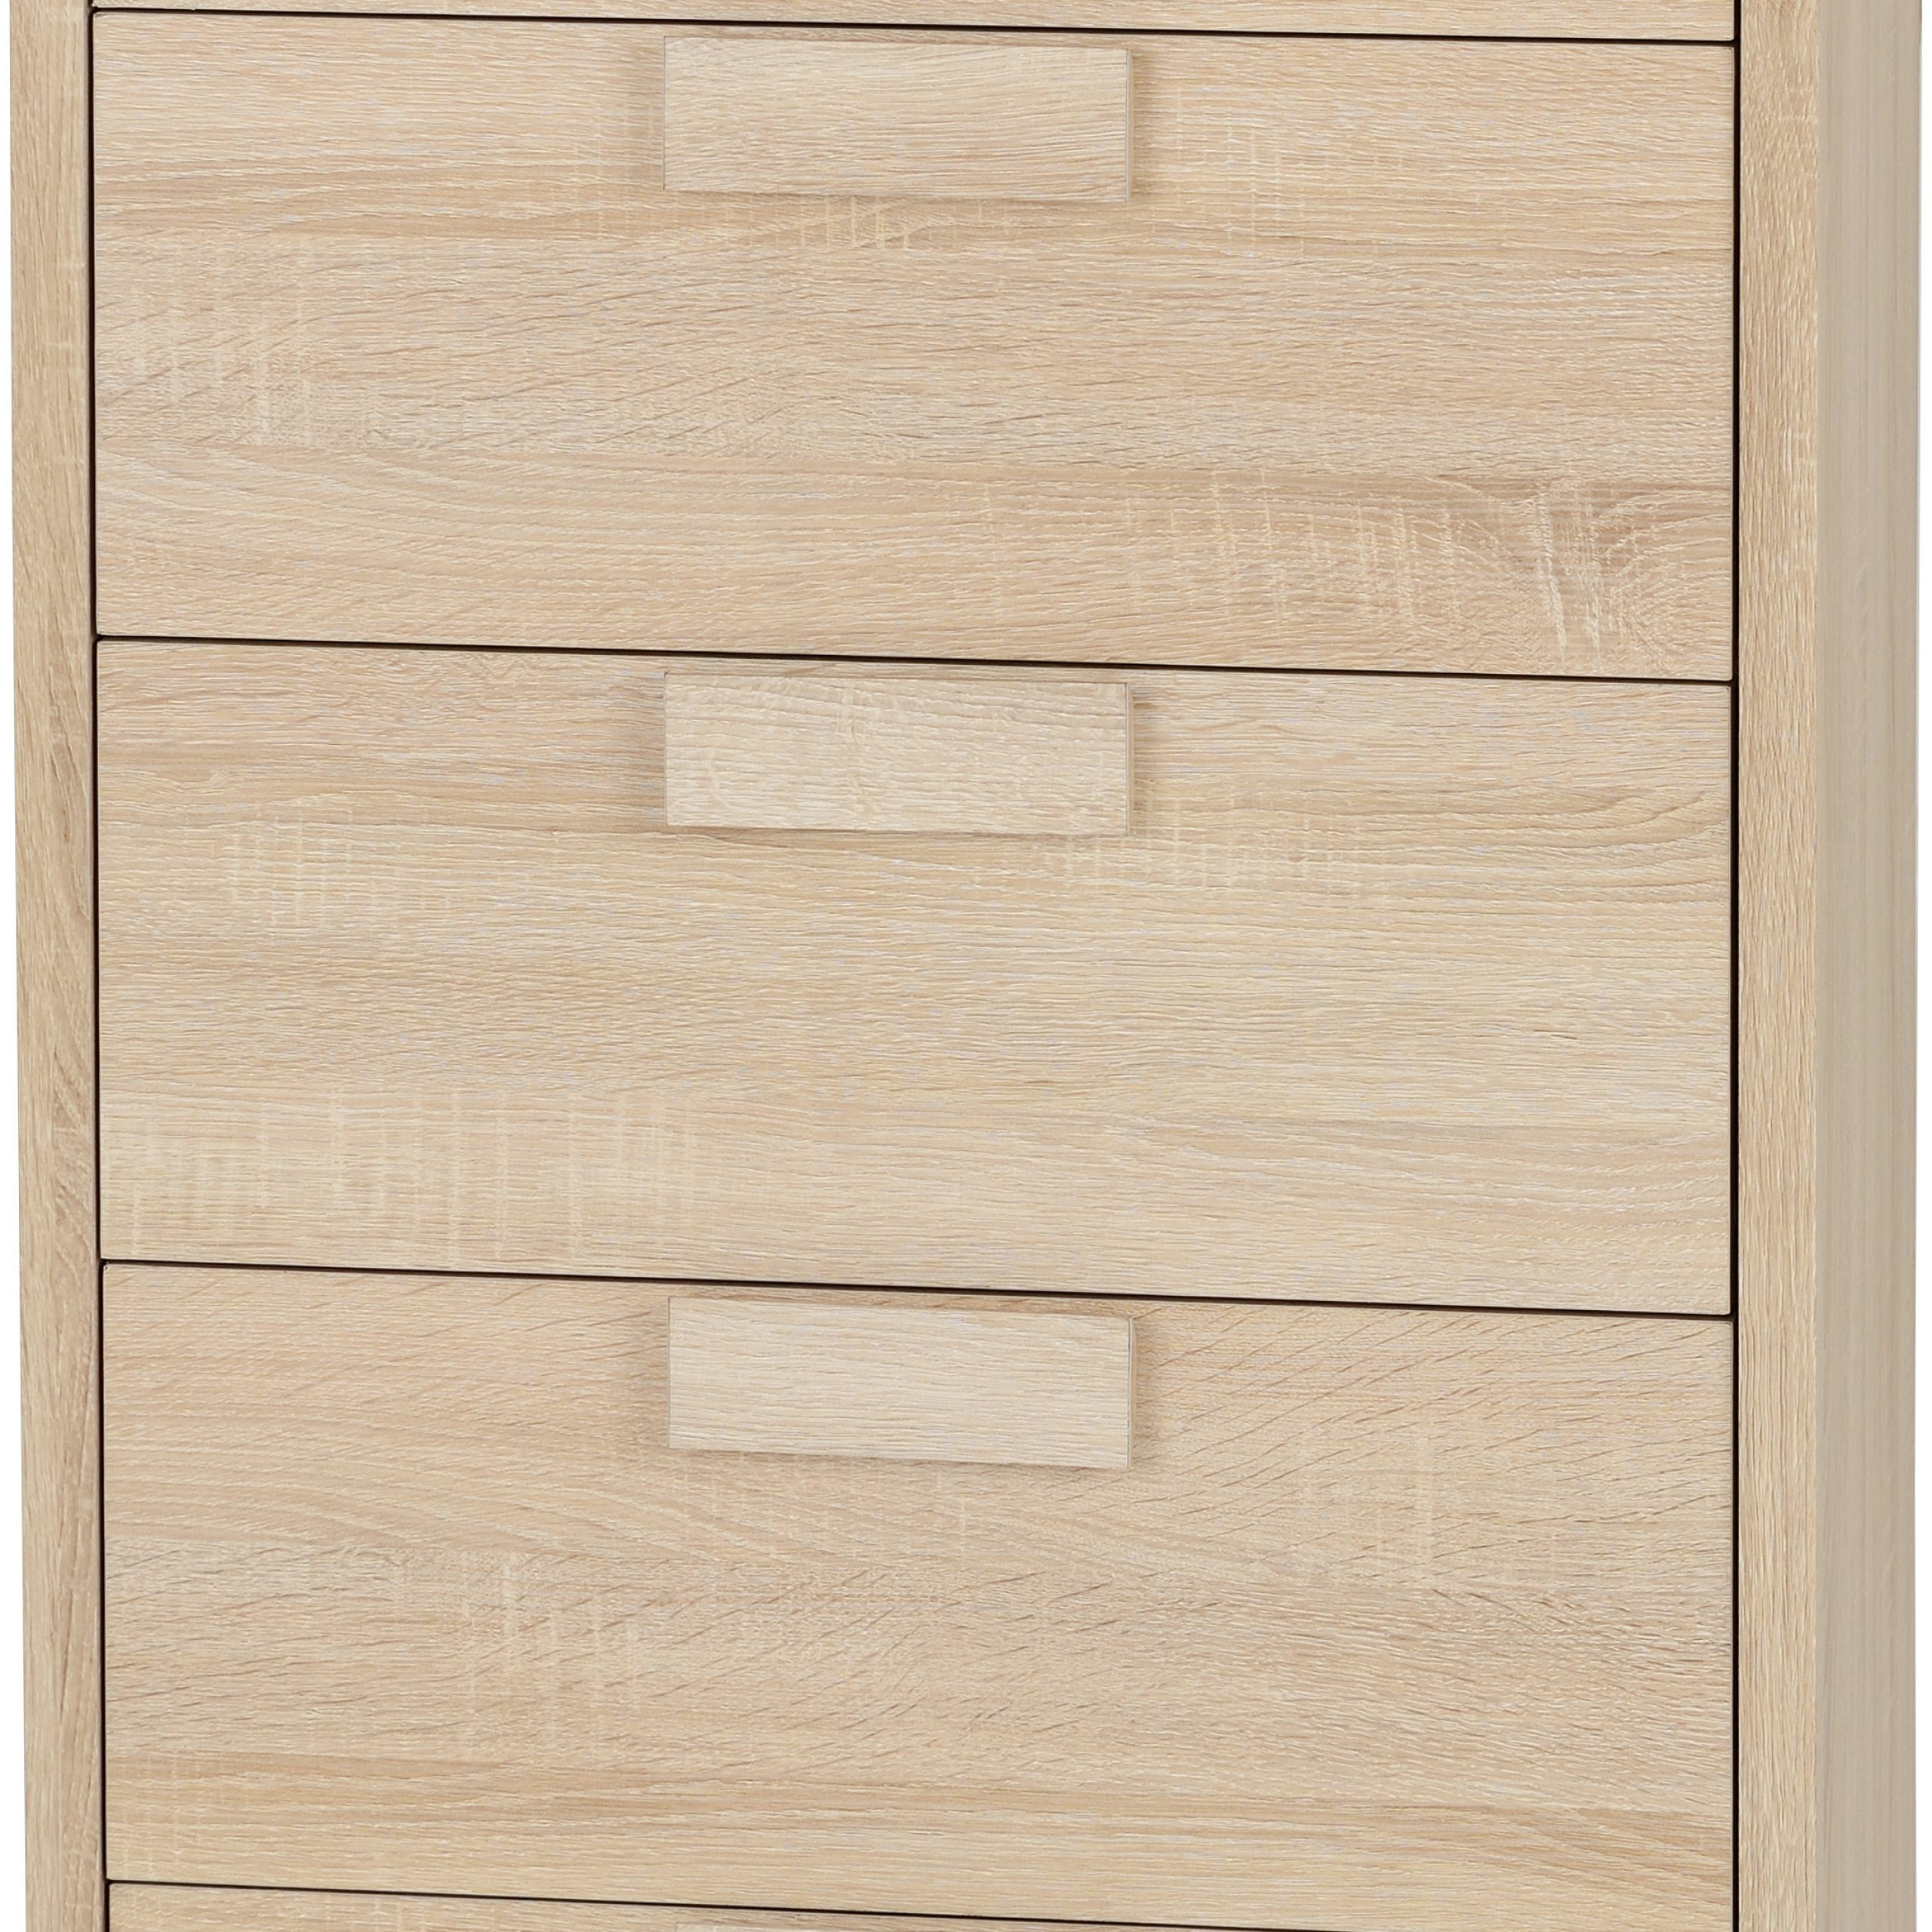 Cambourne 5 Drawer Chest In Sonoma Oak Effect Veneer Intended For Cambourne Tv Stands (View 9 of 20)